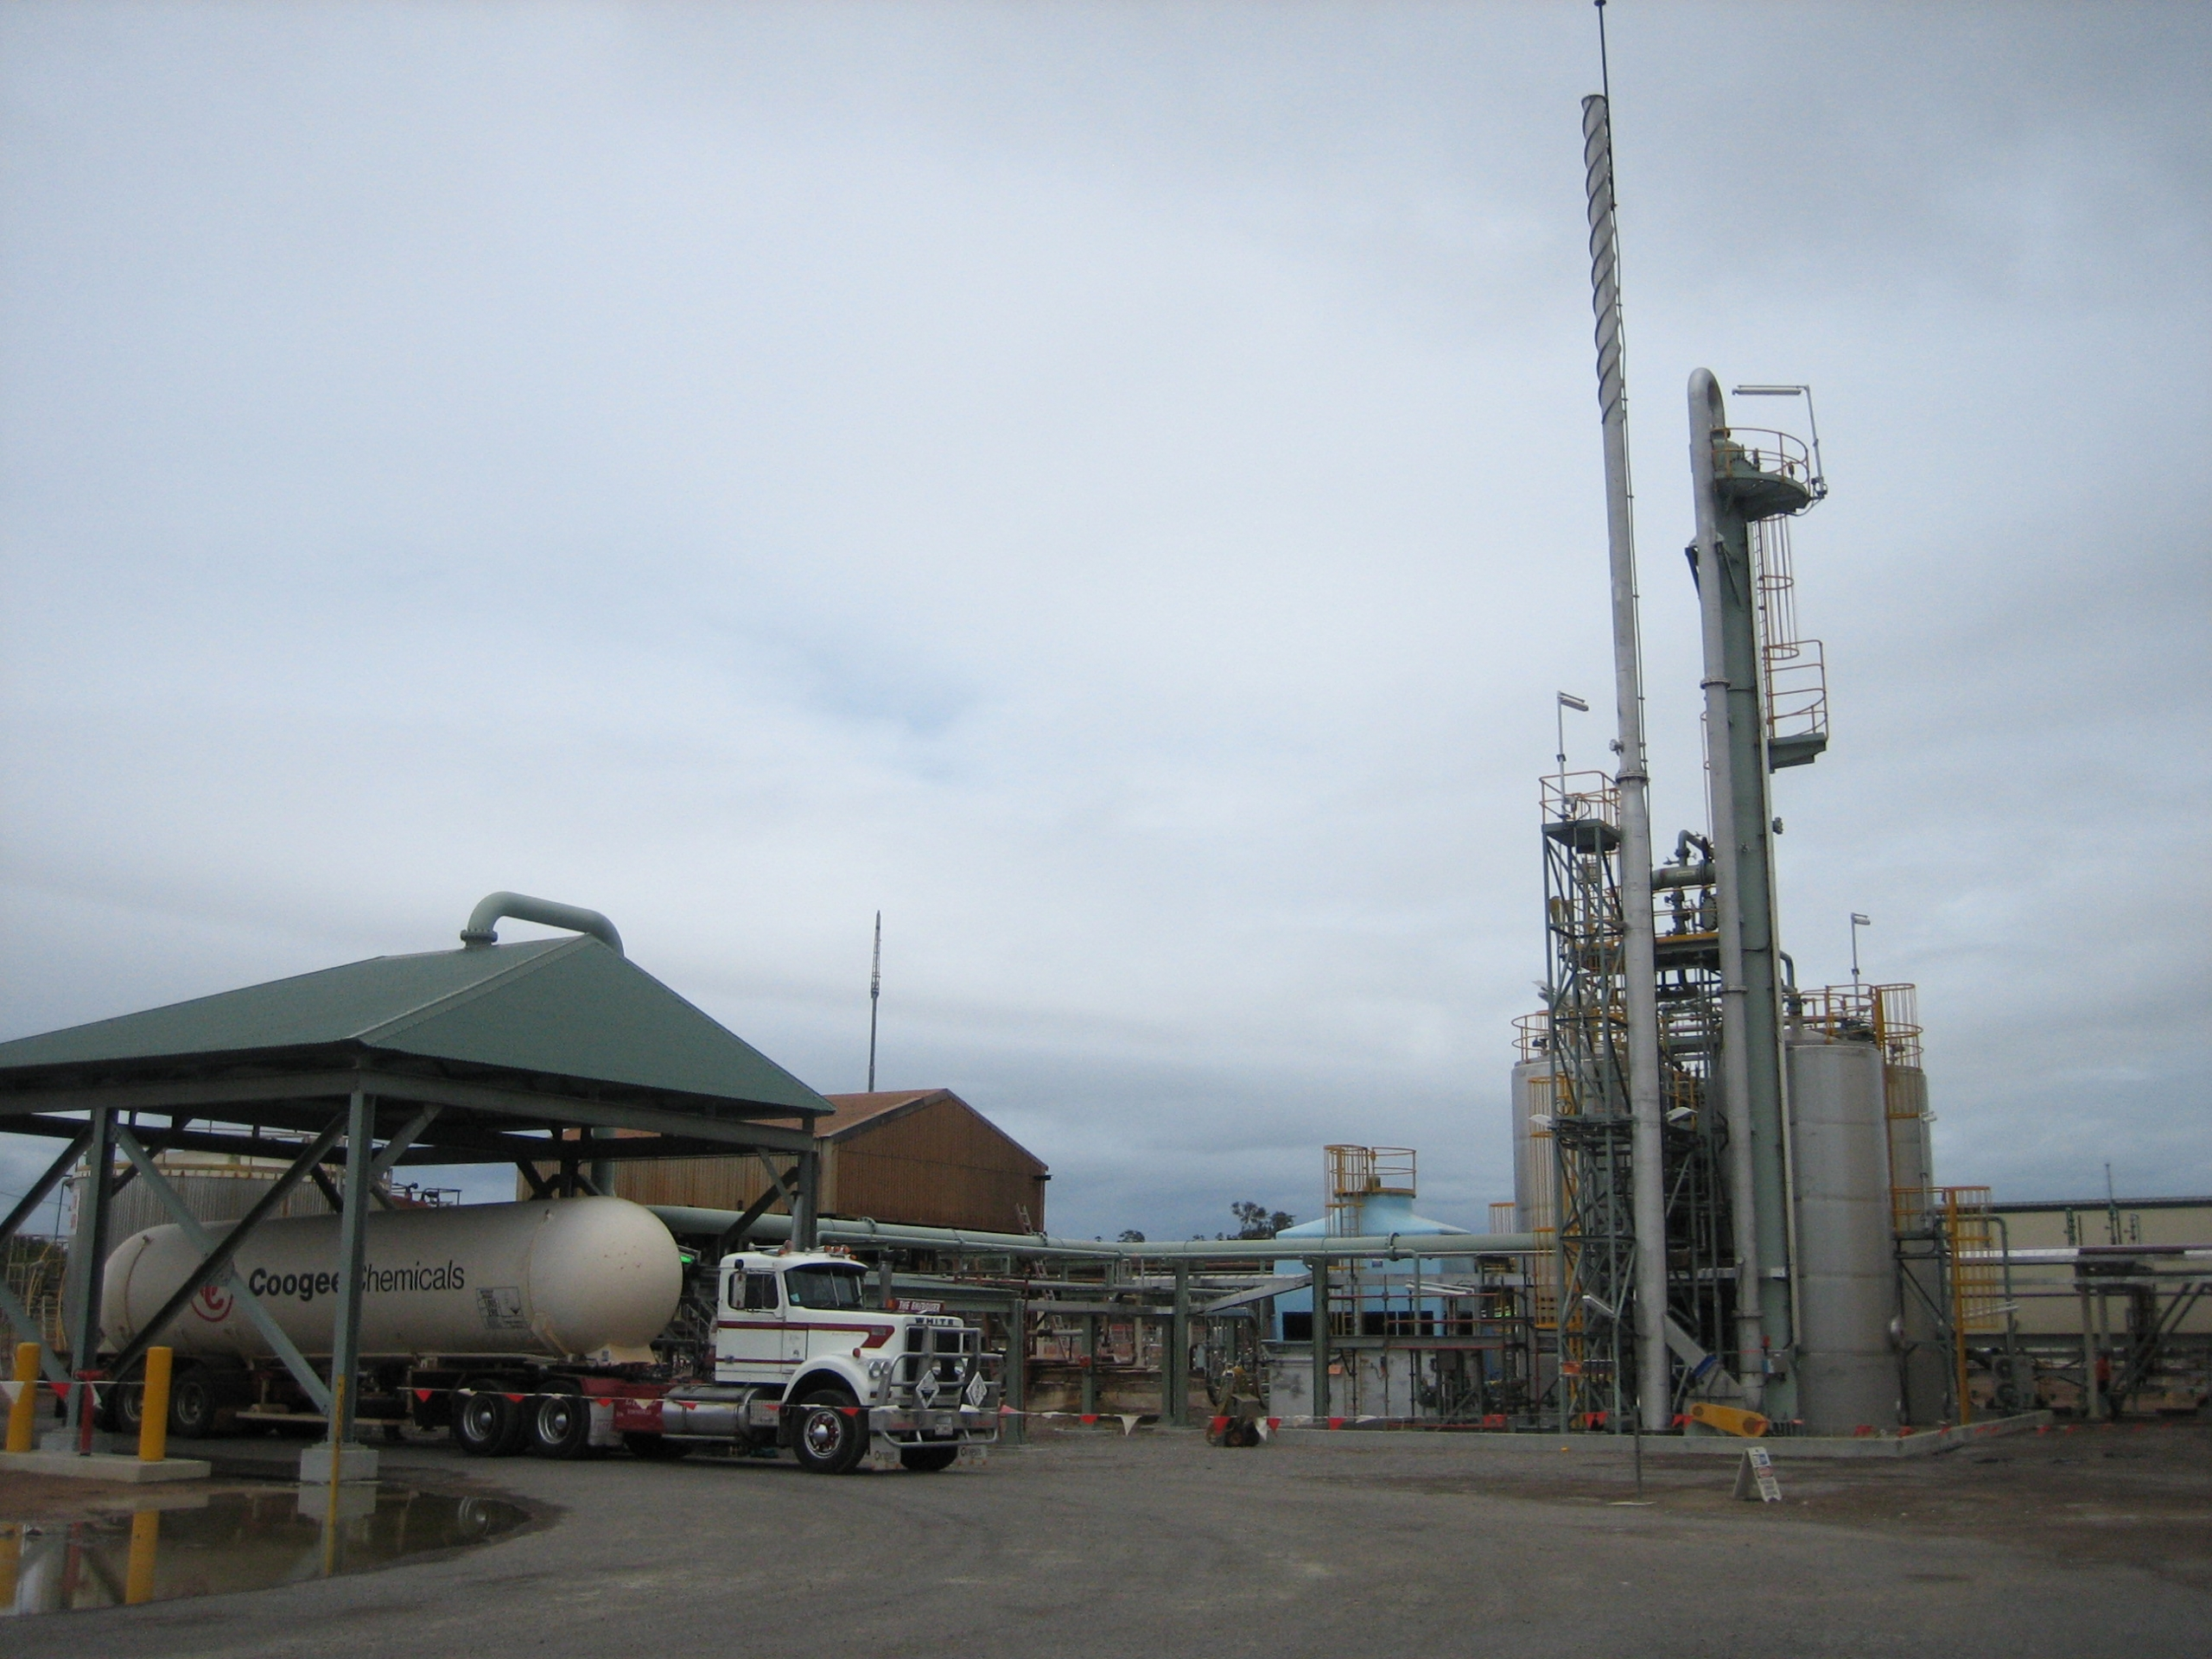 BHP Billiton – Yabulu Expansion Project Ammonia Receival Facility